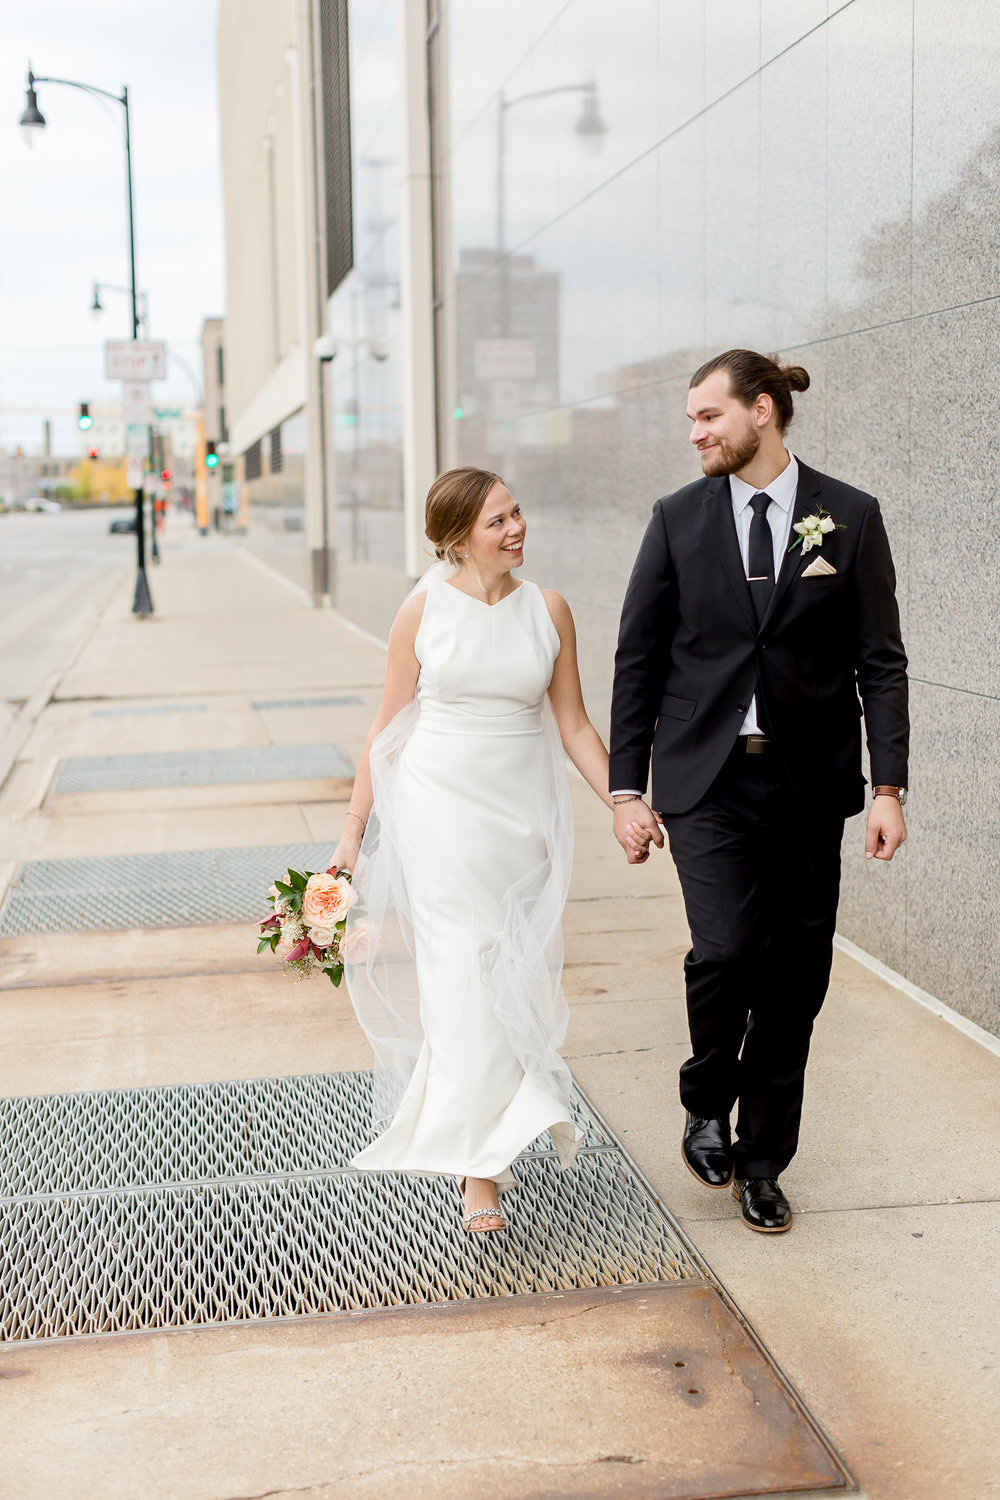 Abigail Berge Photography_JansenWedding-649.jpg